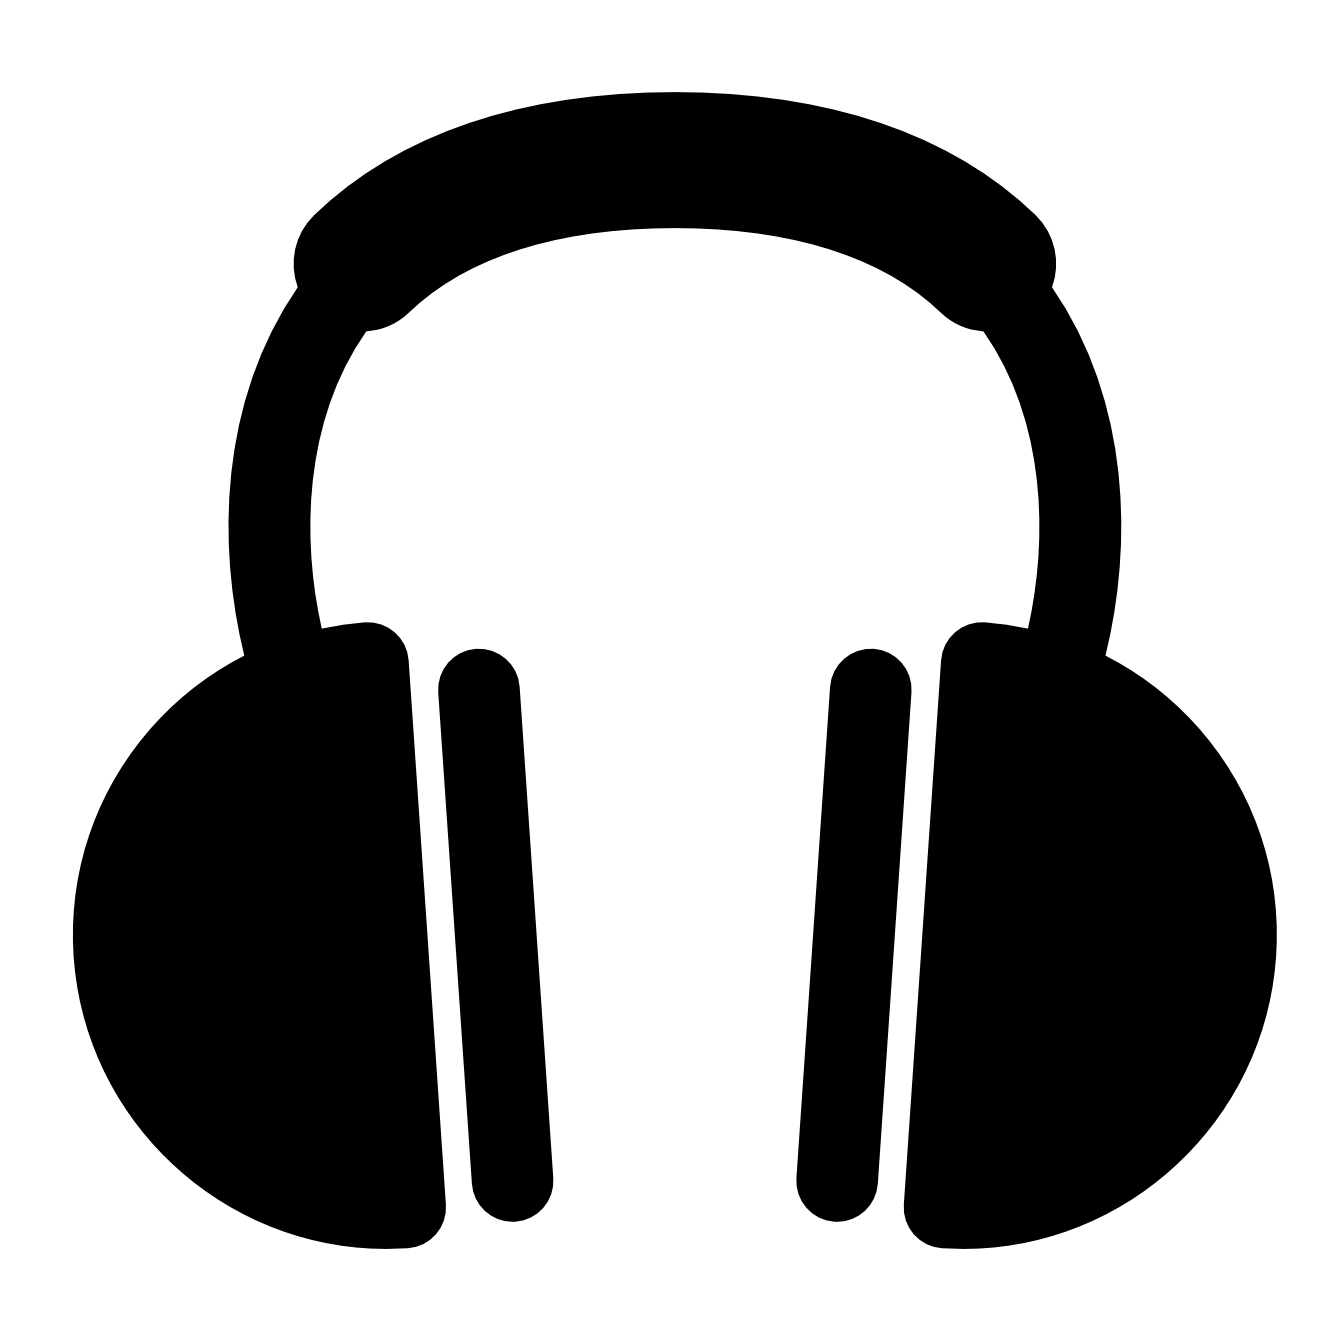 Electronics clipart head phone.  collection of headphones